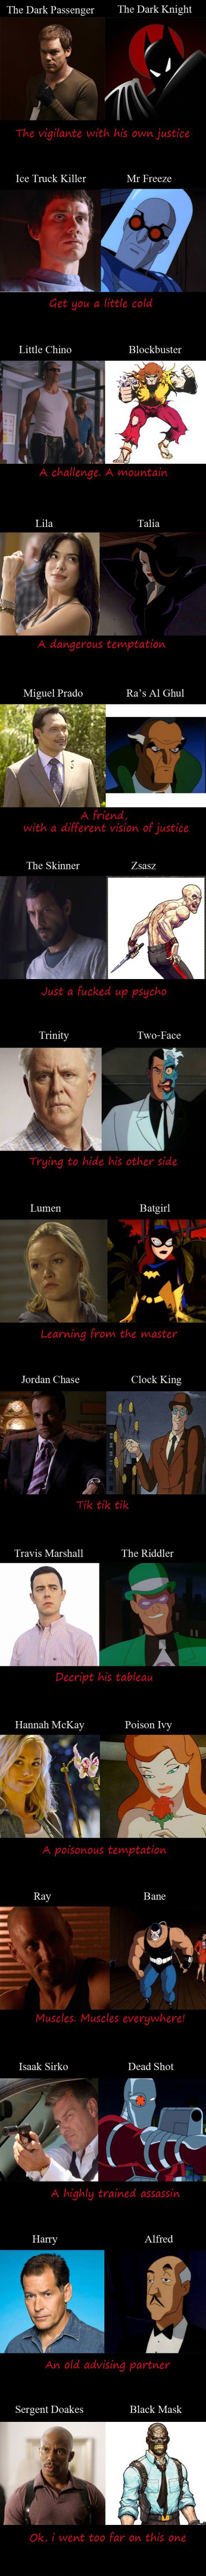 dexter_vs_batman